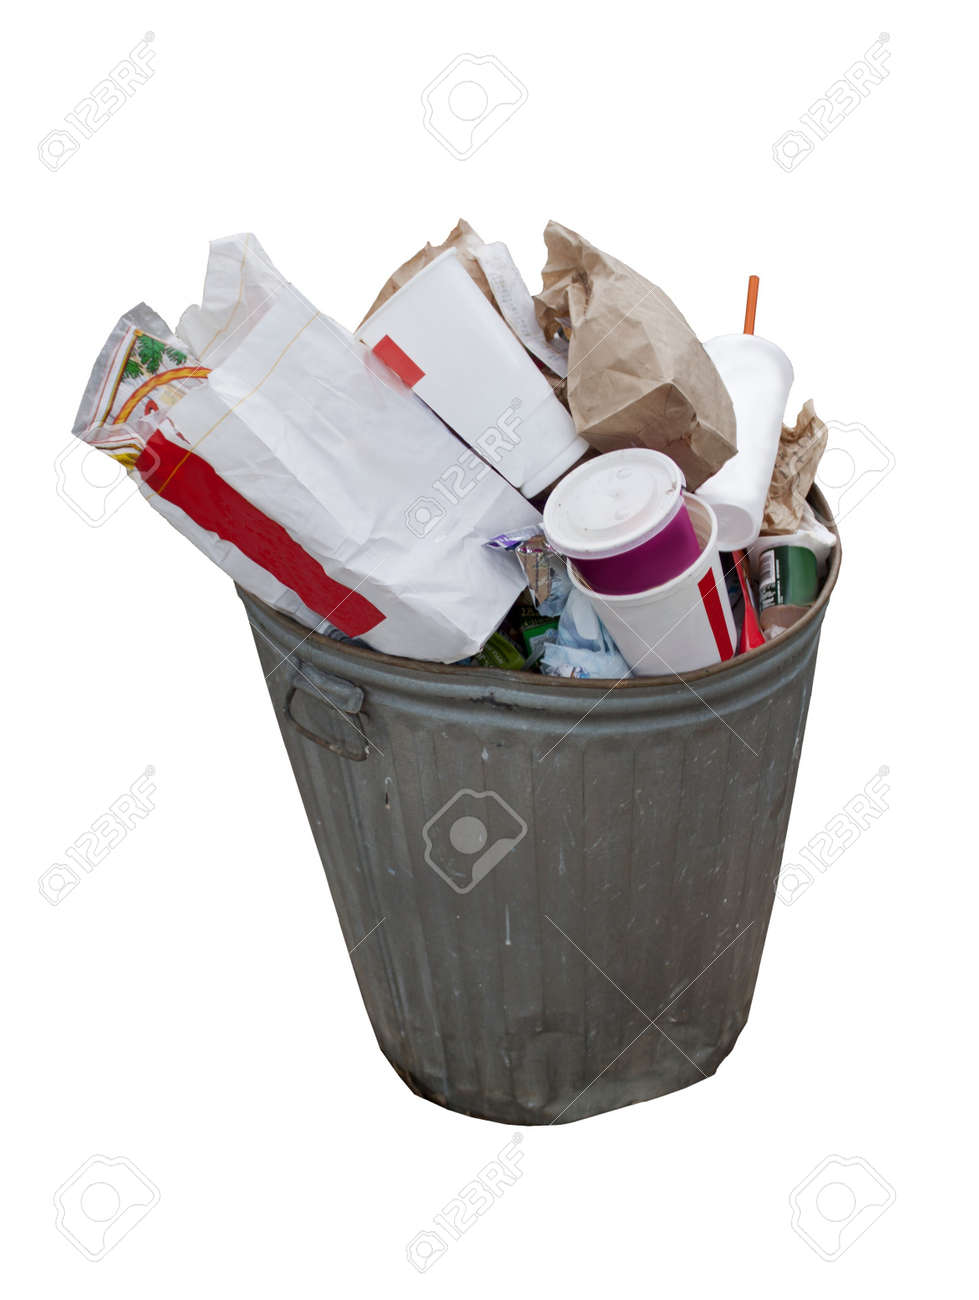 overflowing garbage can isolated on a white background Stock Photo - 7608570